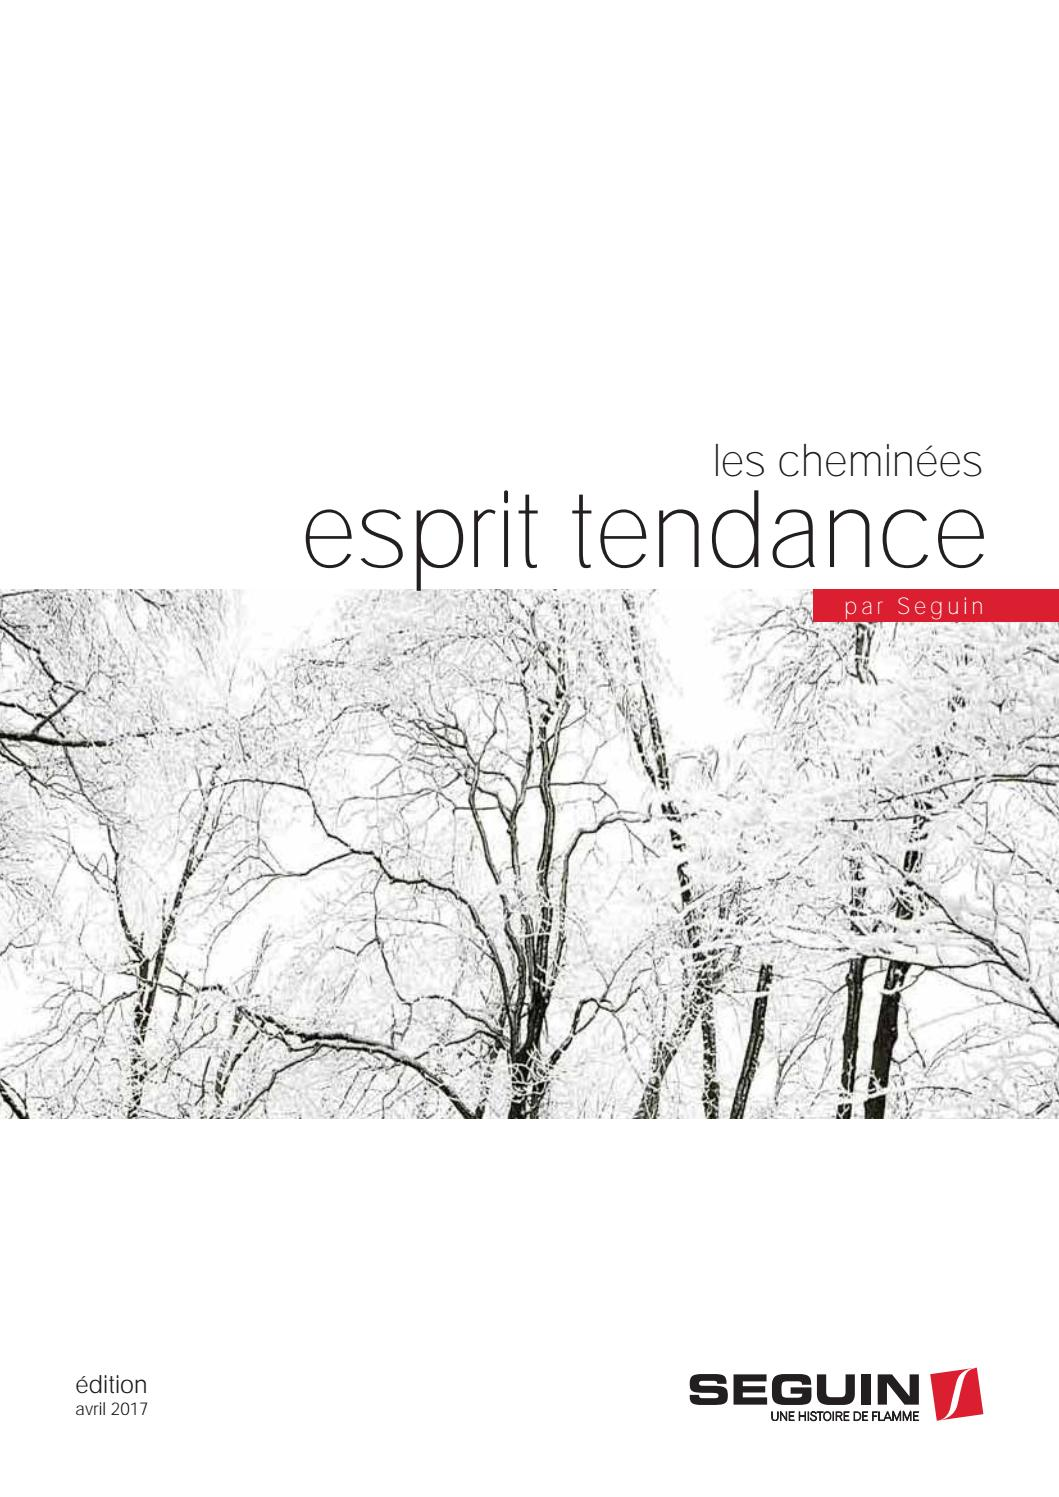 Mgc Cheminees Les Cheminées Tendances By Sitti Issuu